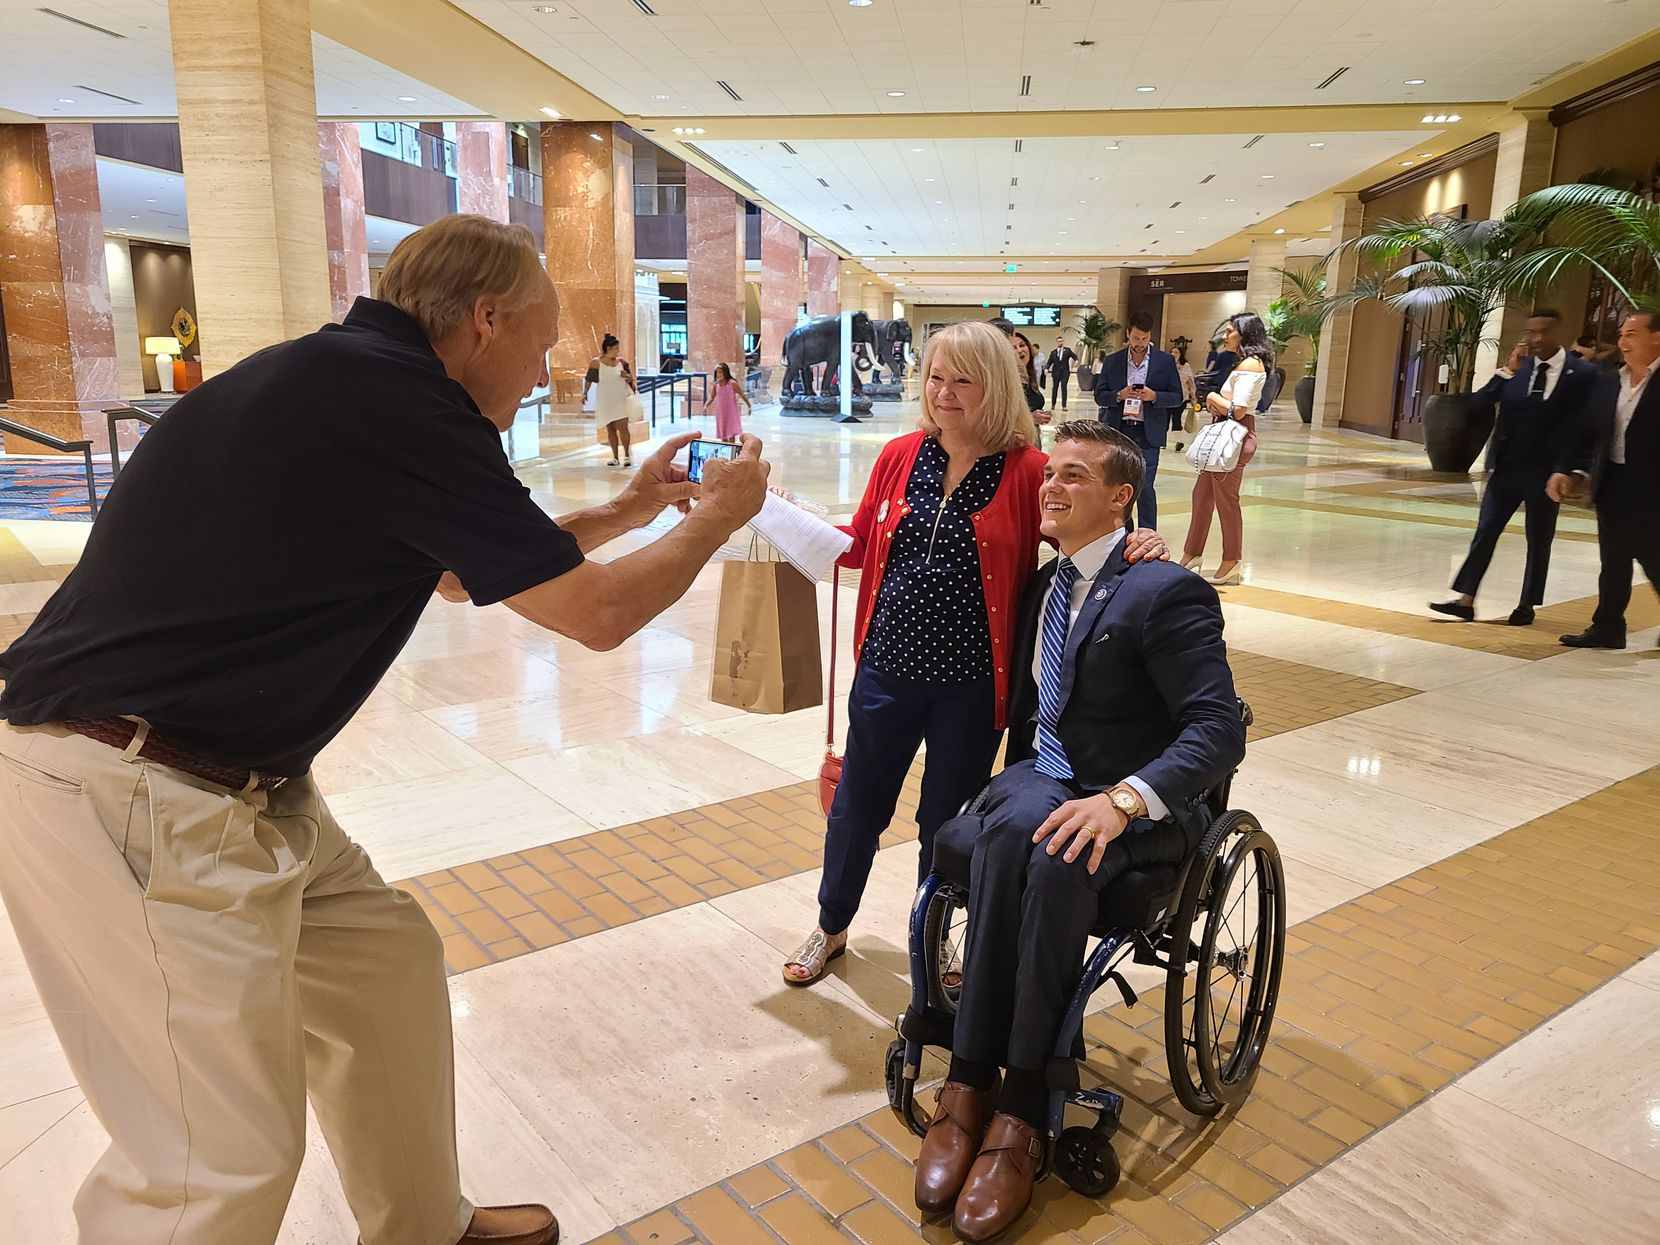 Debbie Billingsly of Van Alstyne poses with Rep. Madison Cawthorn, R-N.C., during the Conservative Political Action Conference in Dallas as her husband, Paul Billingsly, snaps the photo. Cawthorn suggested the Biden administration's a door-to-door campaign to expand COVID-19 vaccination was a dry run for a government scheme to confiscate Bibles and guns.